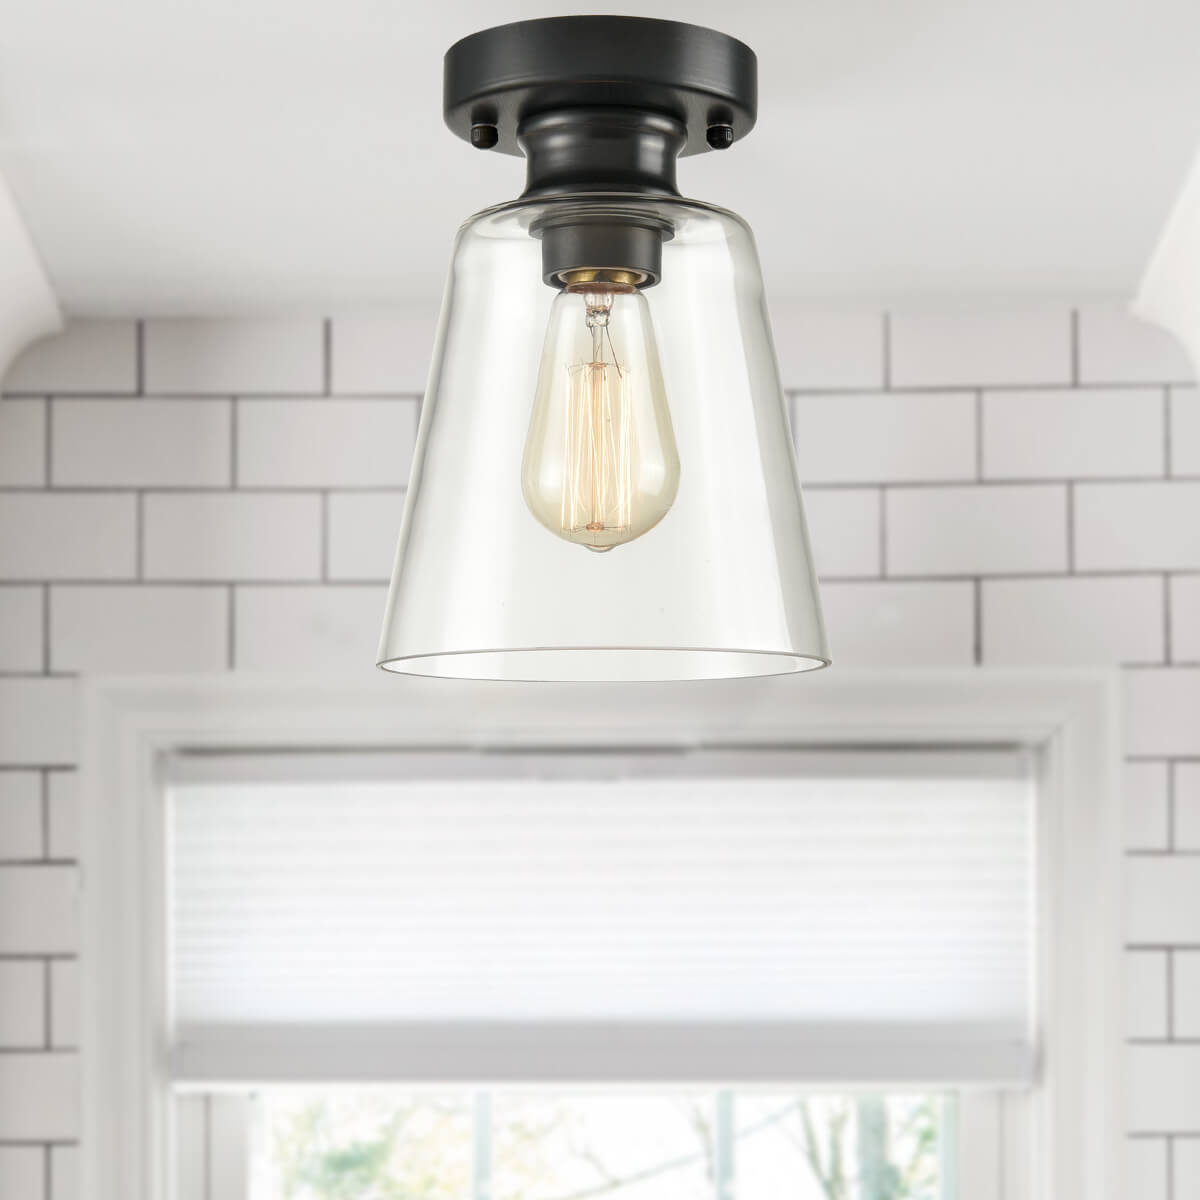 Industrial Ceiling Light Fixture Flush Mount with Clear Glass Shade